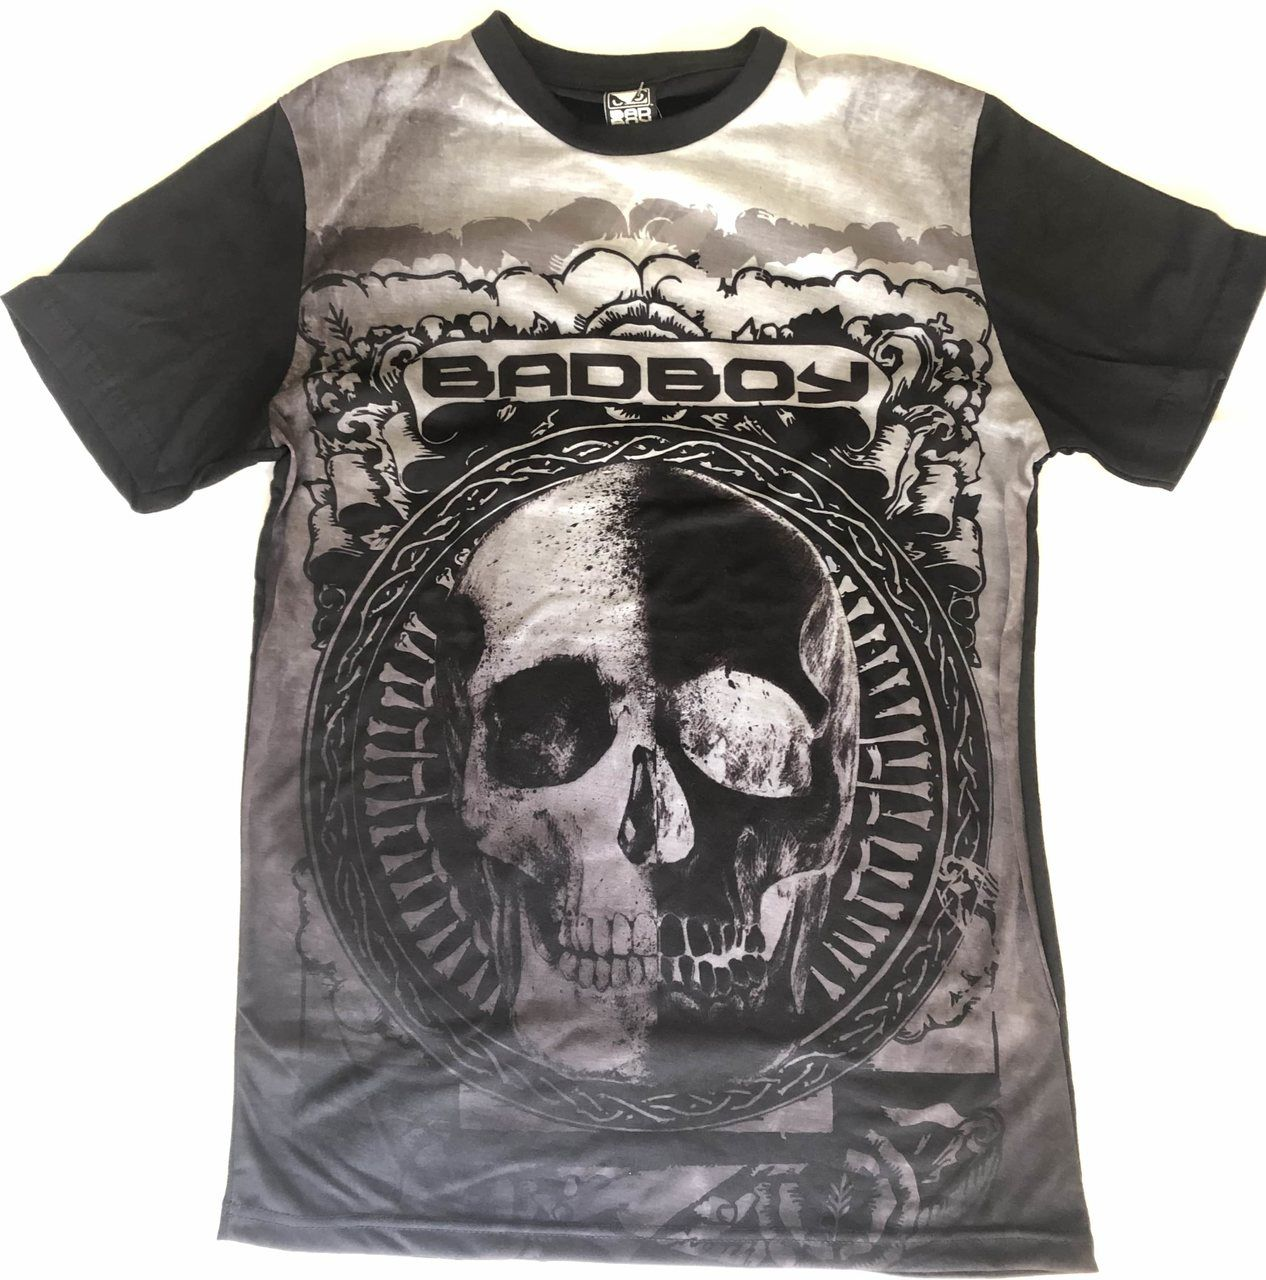 Camiseta Bad Boy Tattoo